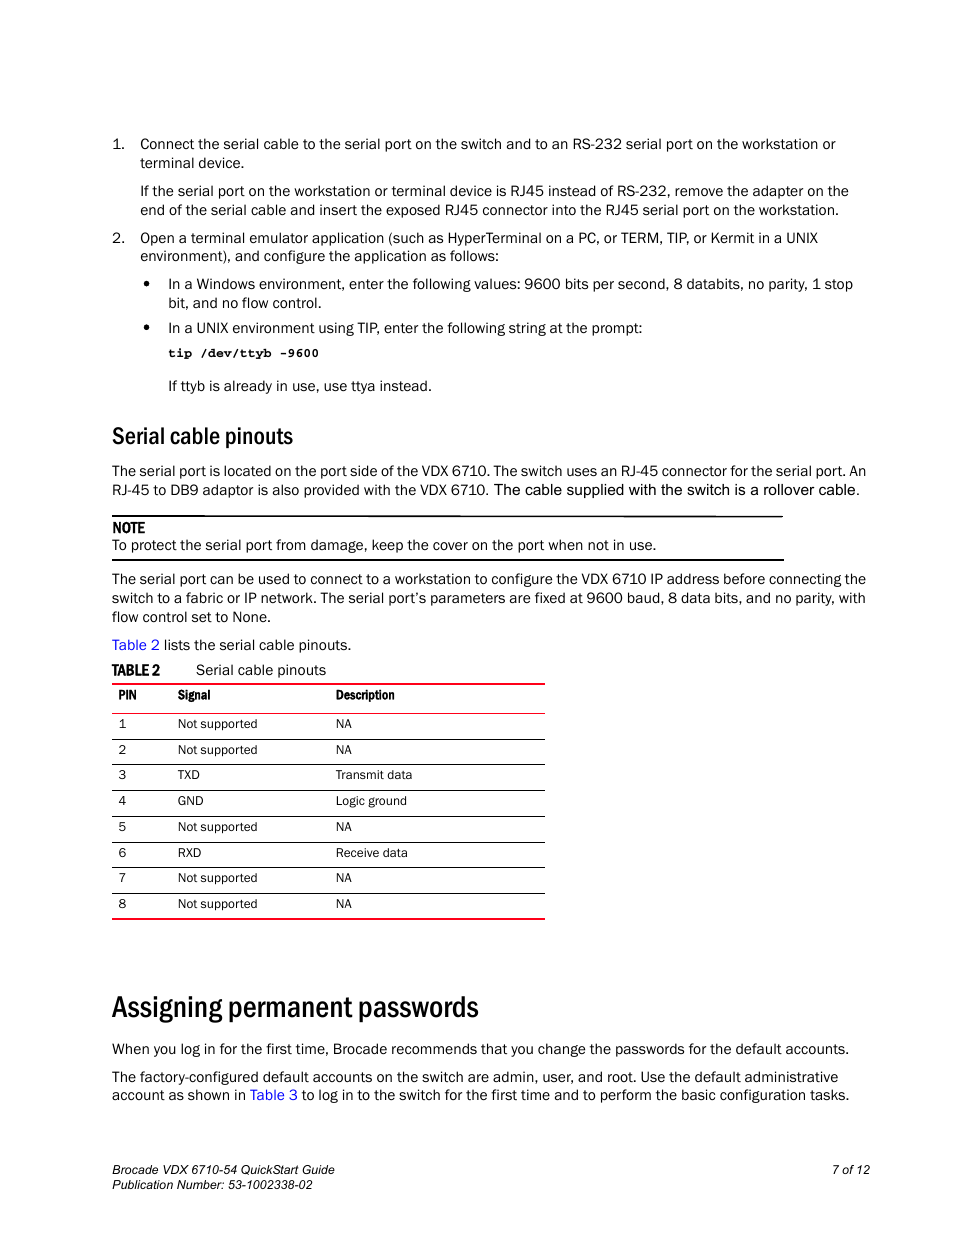 Serial Cable Pinouts Assigning Permanent Passwords Brocade Schematic Communications Systems Vdx 6710 54 User Manual Page 7 12